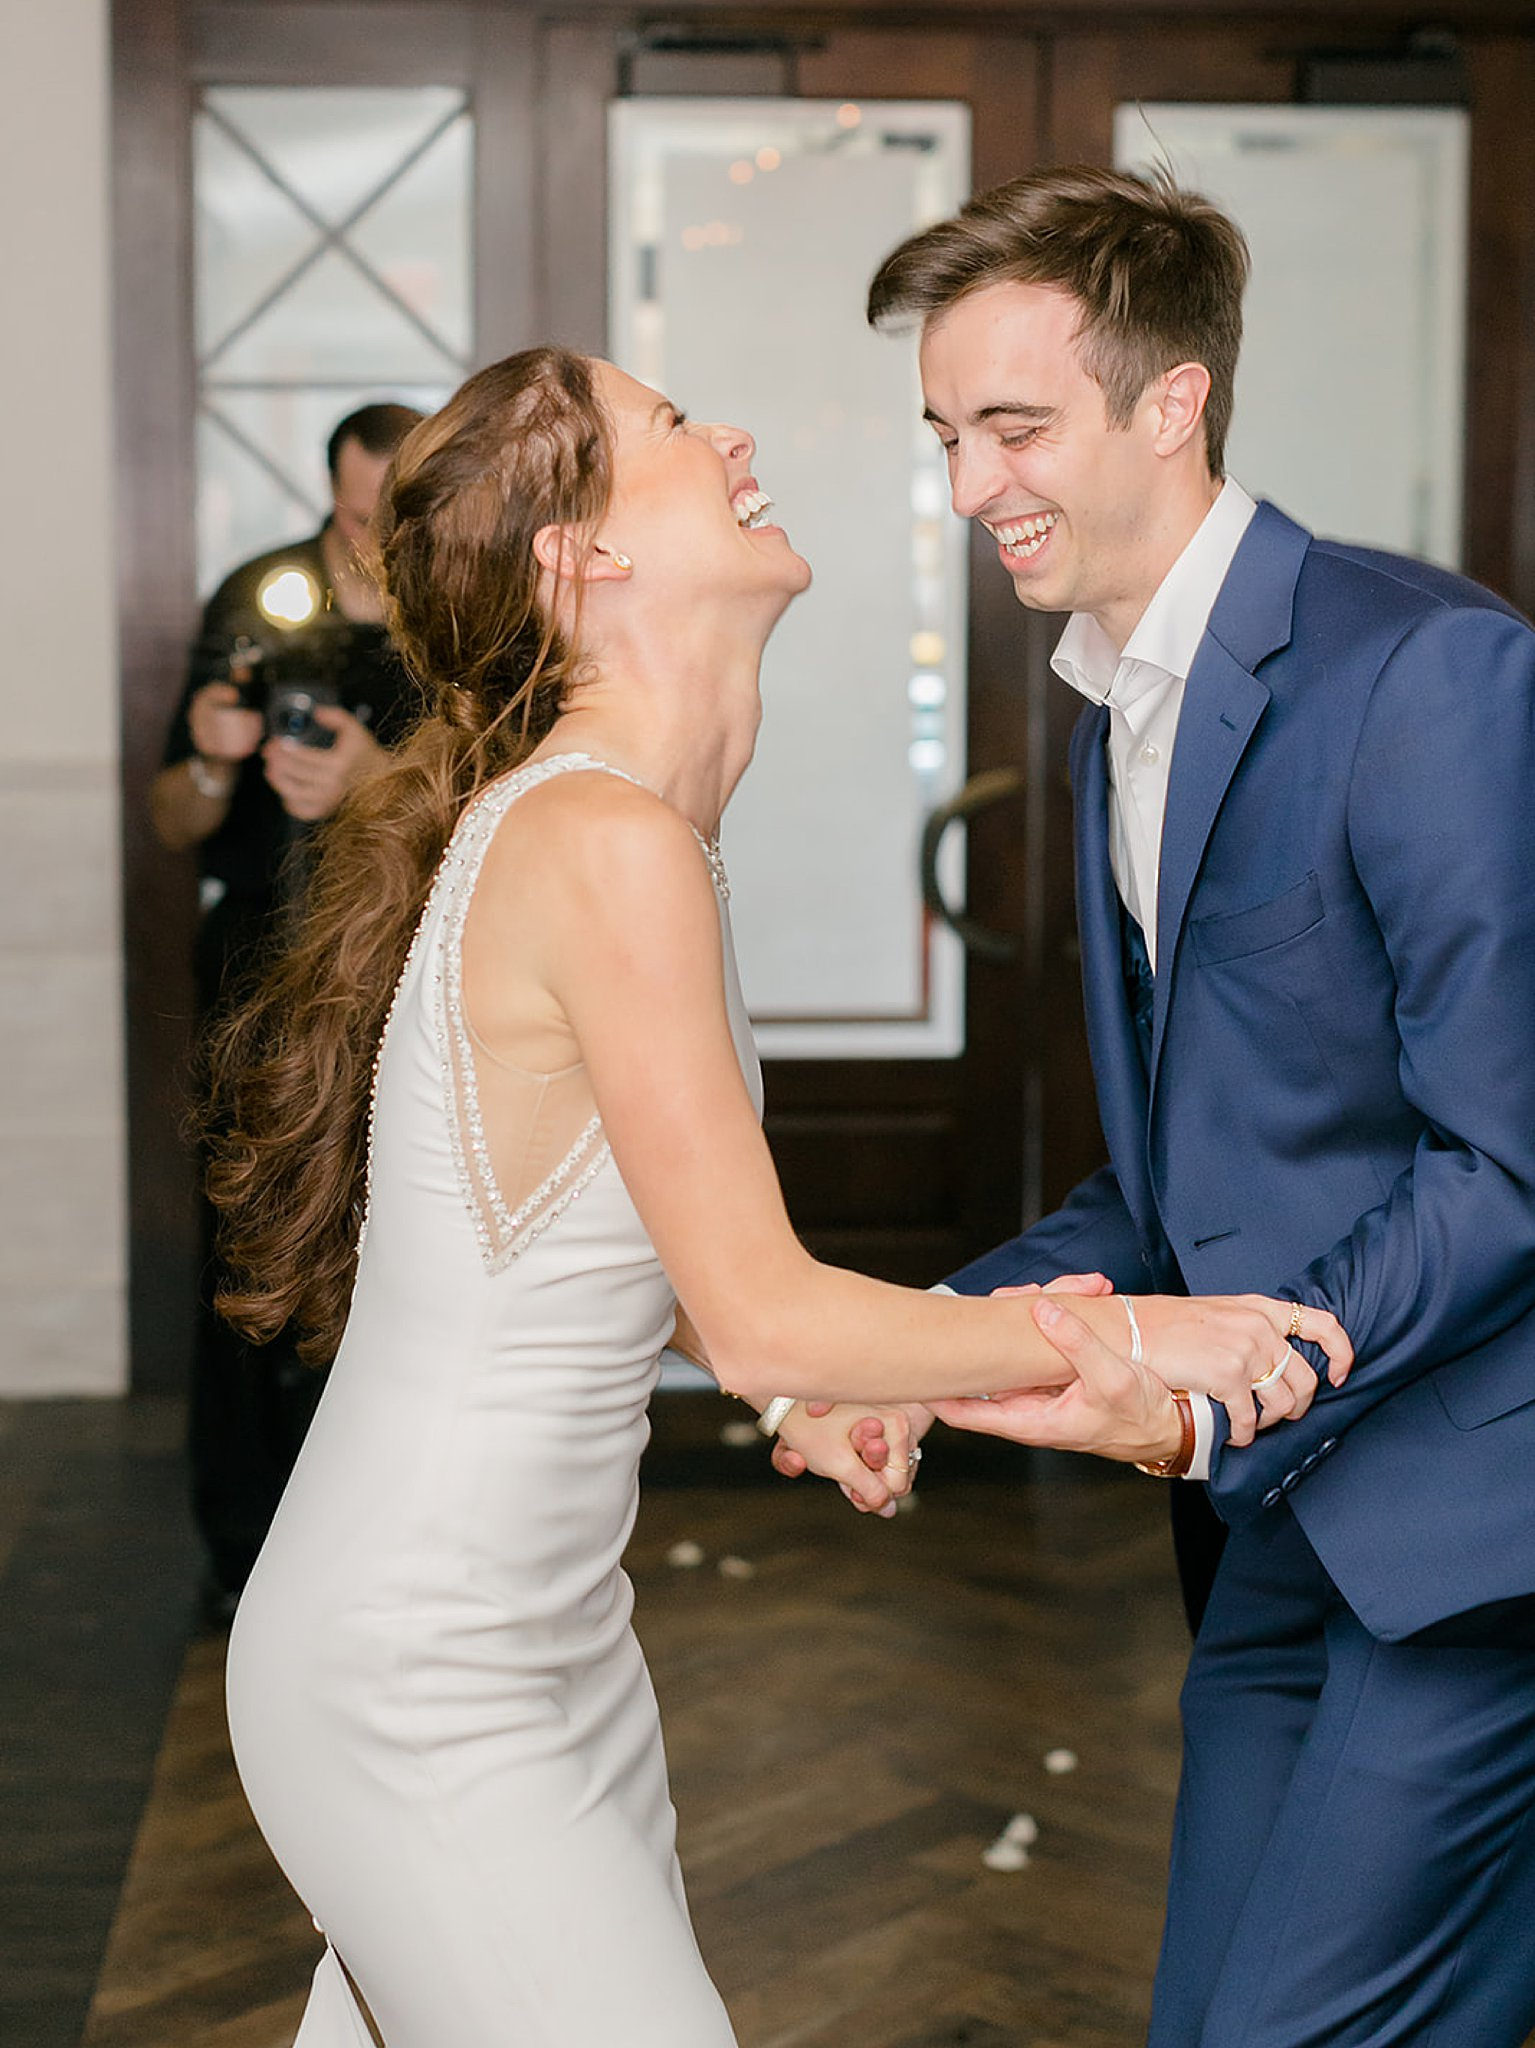 The Reeds at Shelter Haven Wedding Photography by Magdalena Studios KylieChristian 0057